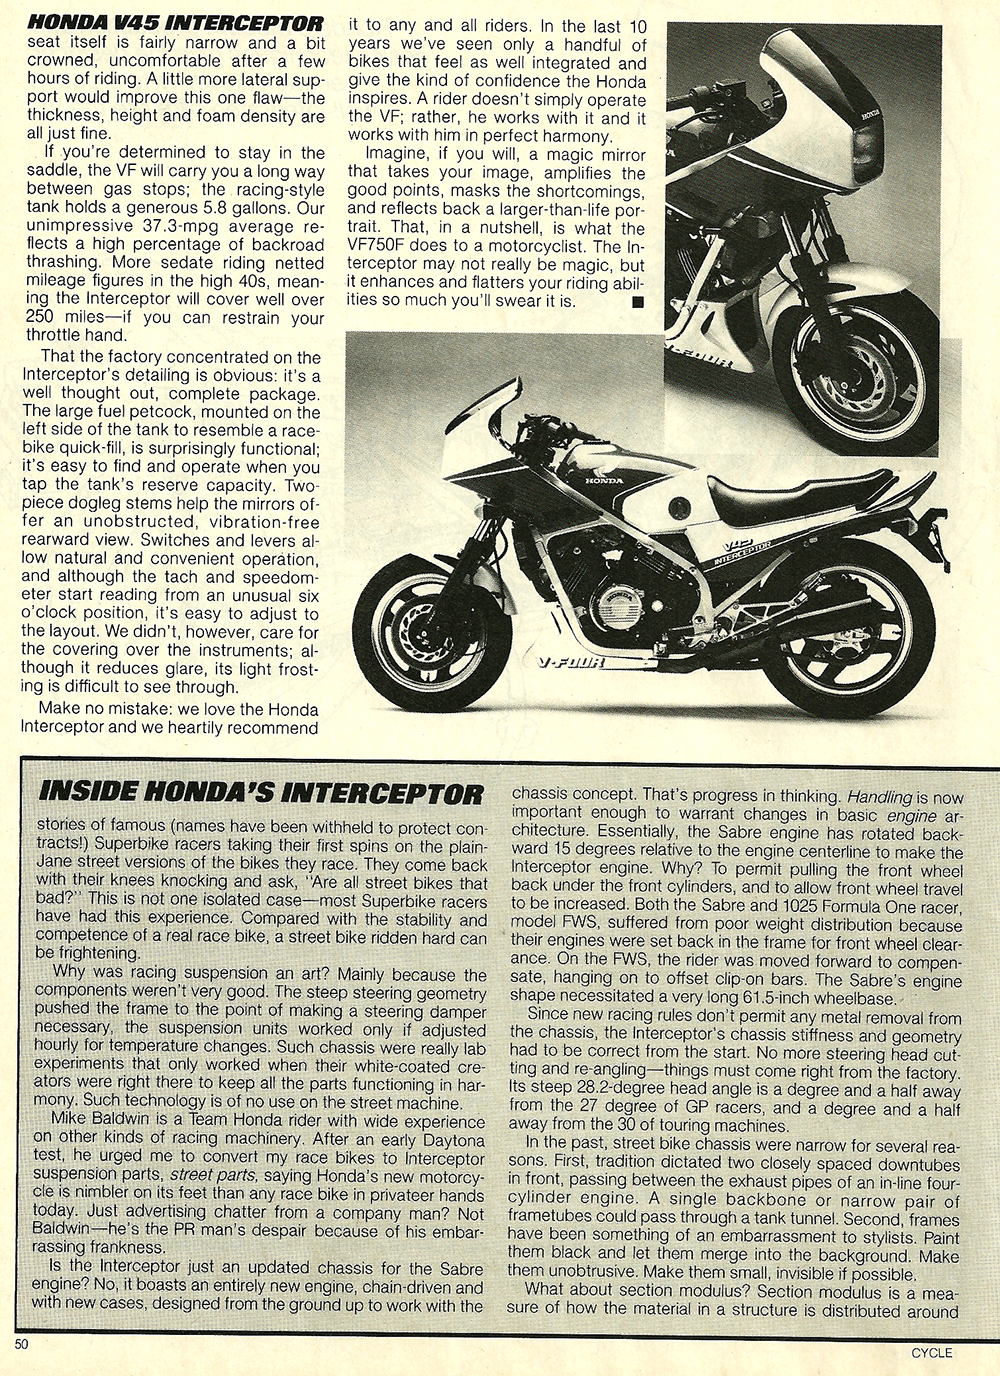 1983 Honda V45 Interceptor road test 10.jpg